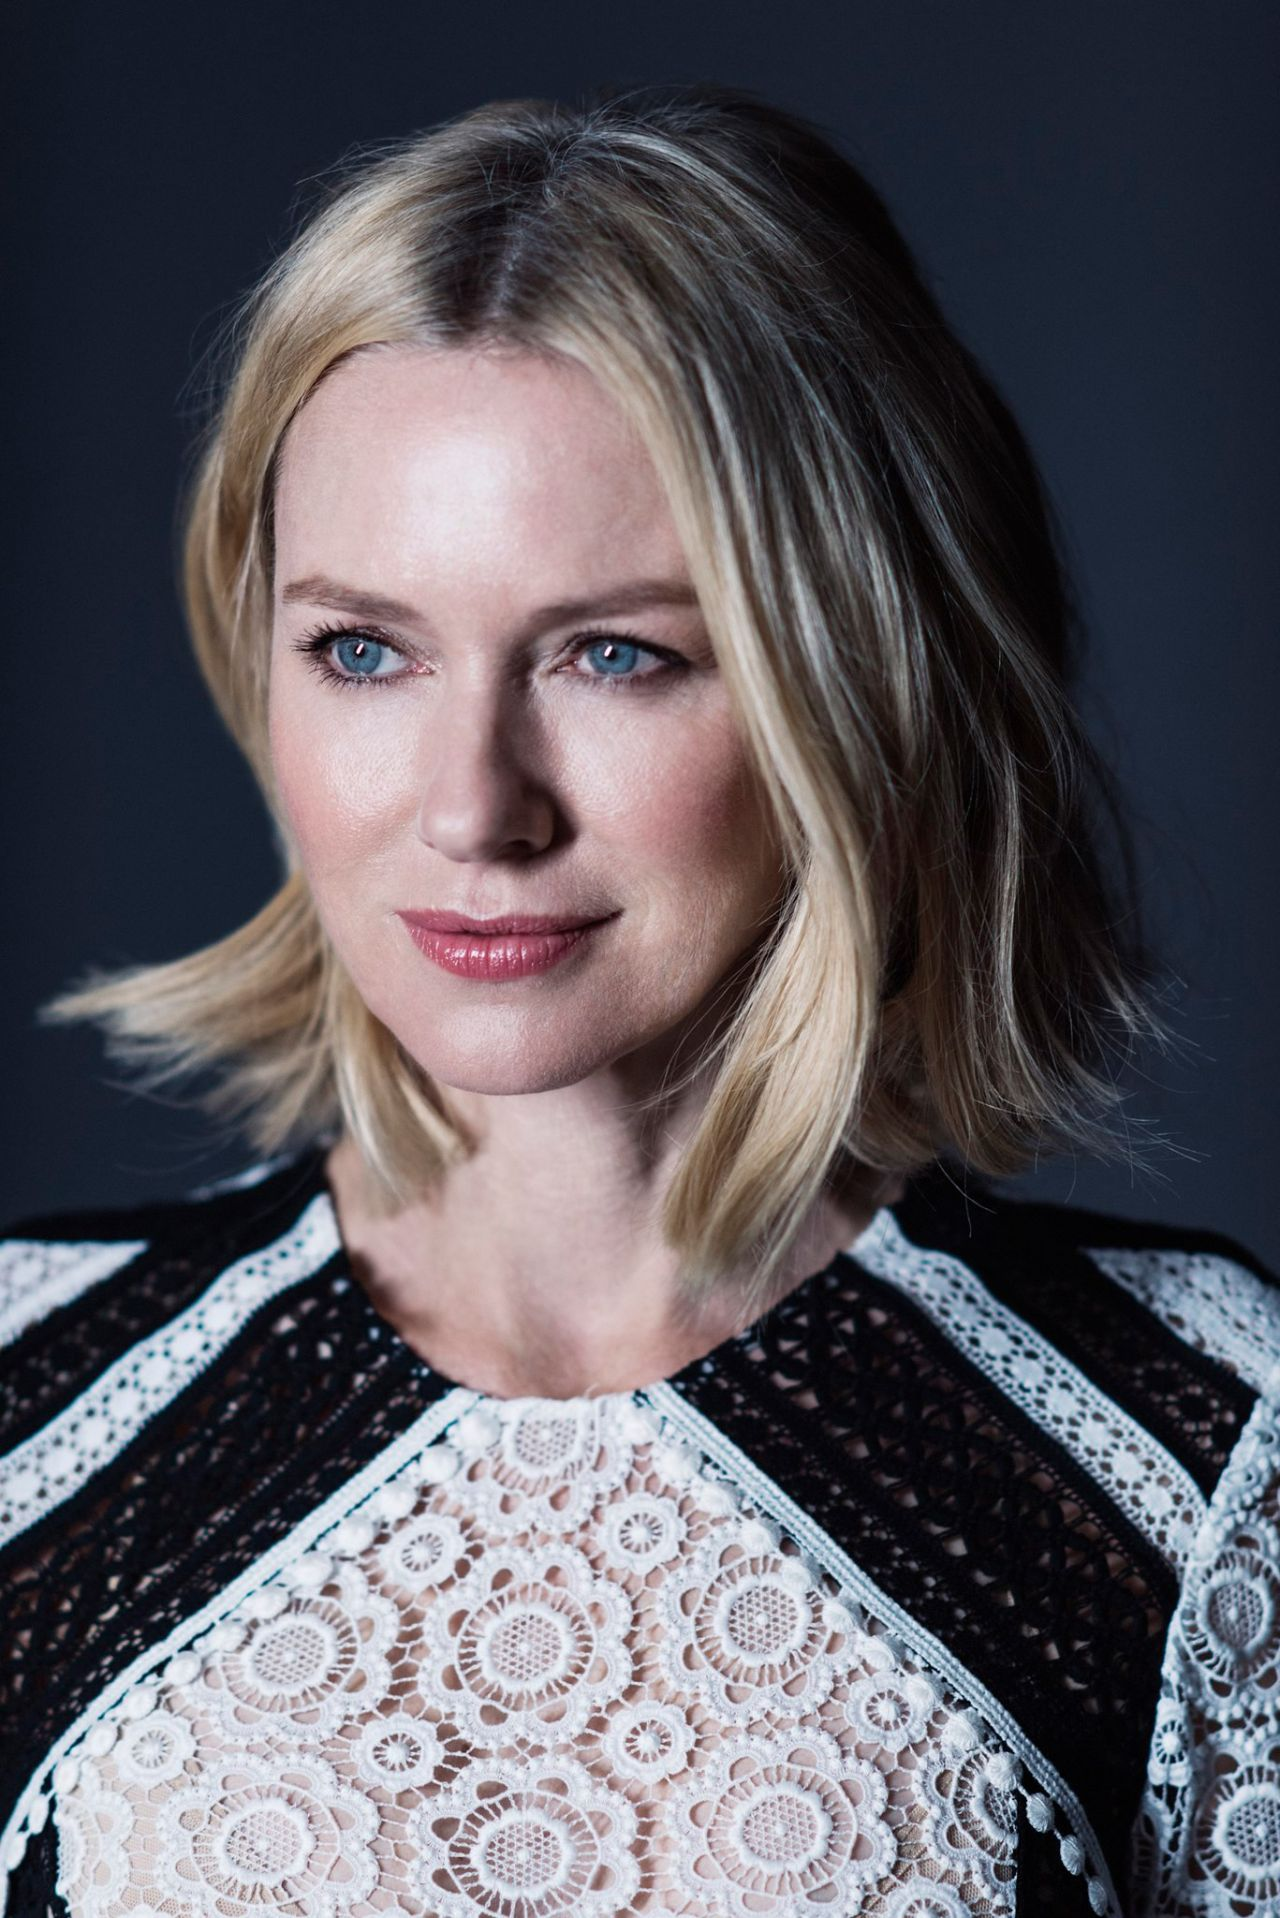 Naomi Watts – Rhapsody Photoshoot – March 2015 Naomi Watts ... Naomi Watts